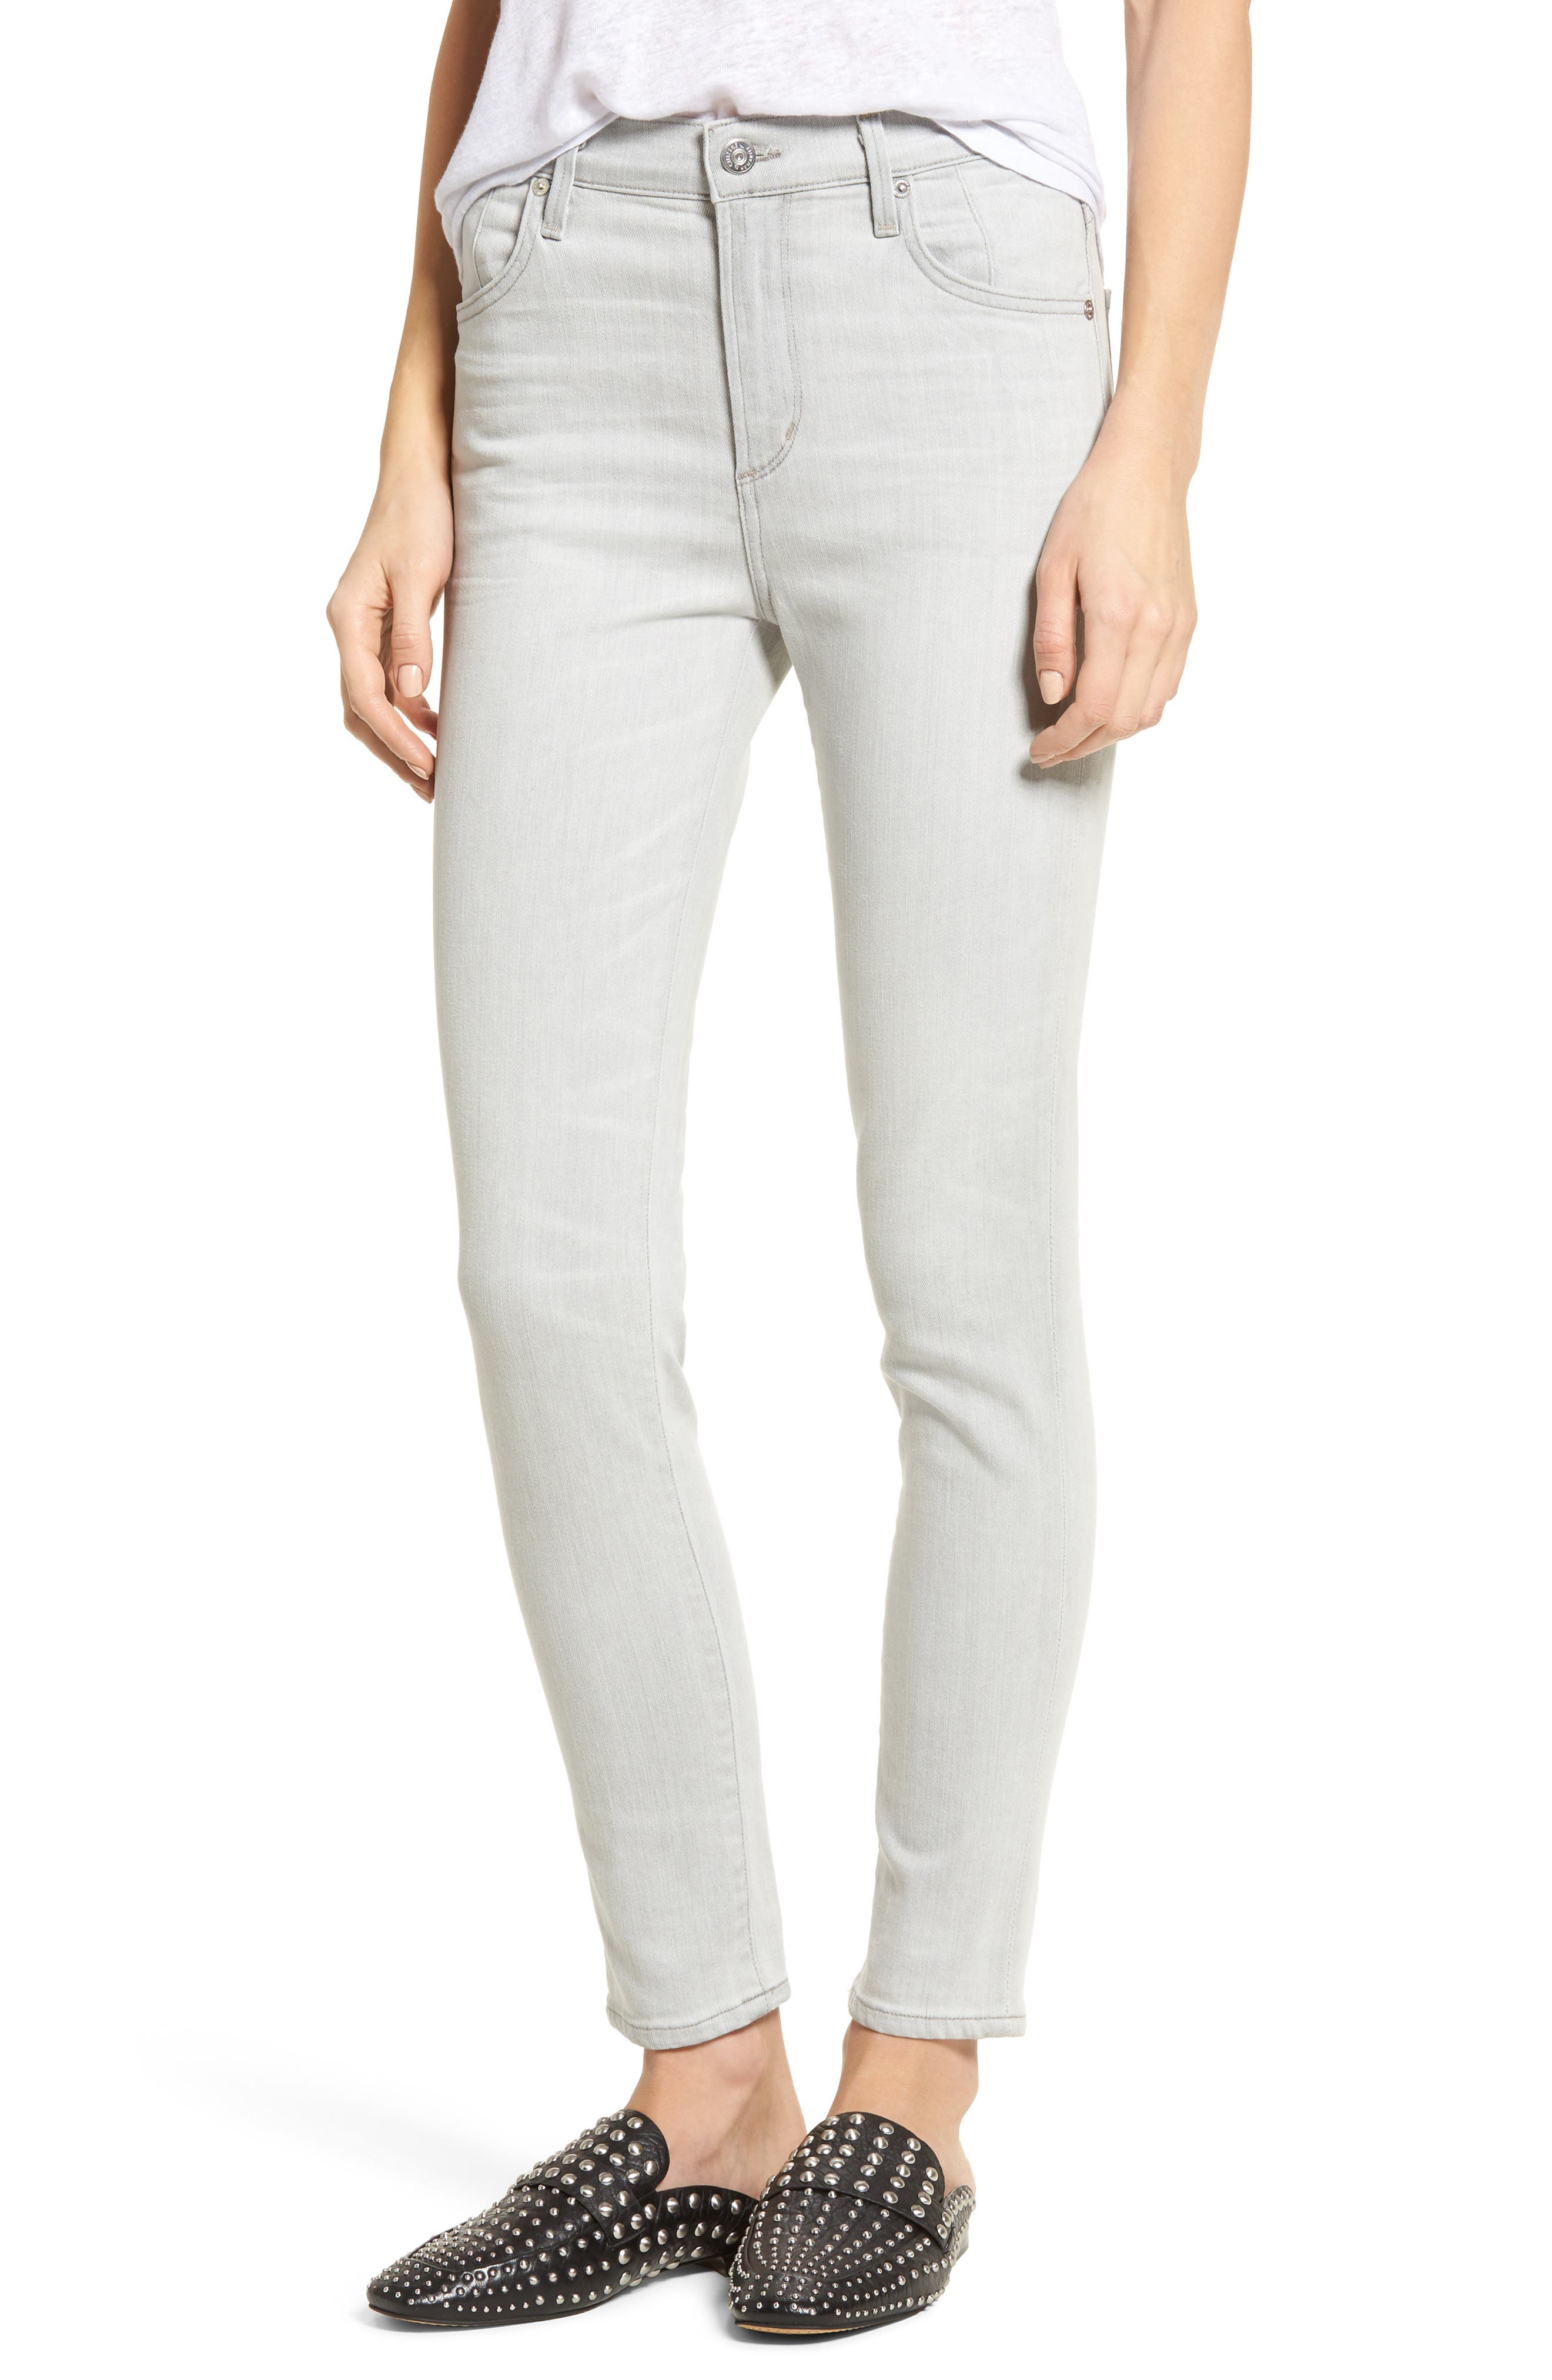 Carlie High Waist Ankle Skinny Jeans,                             Main thumbnail 1, color,                             055